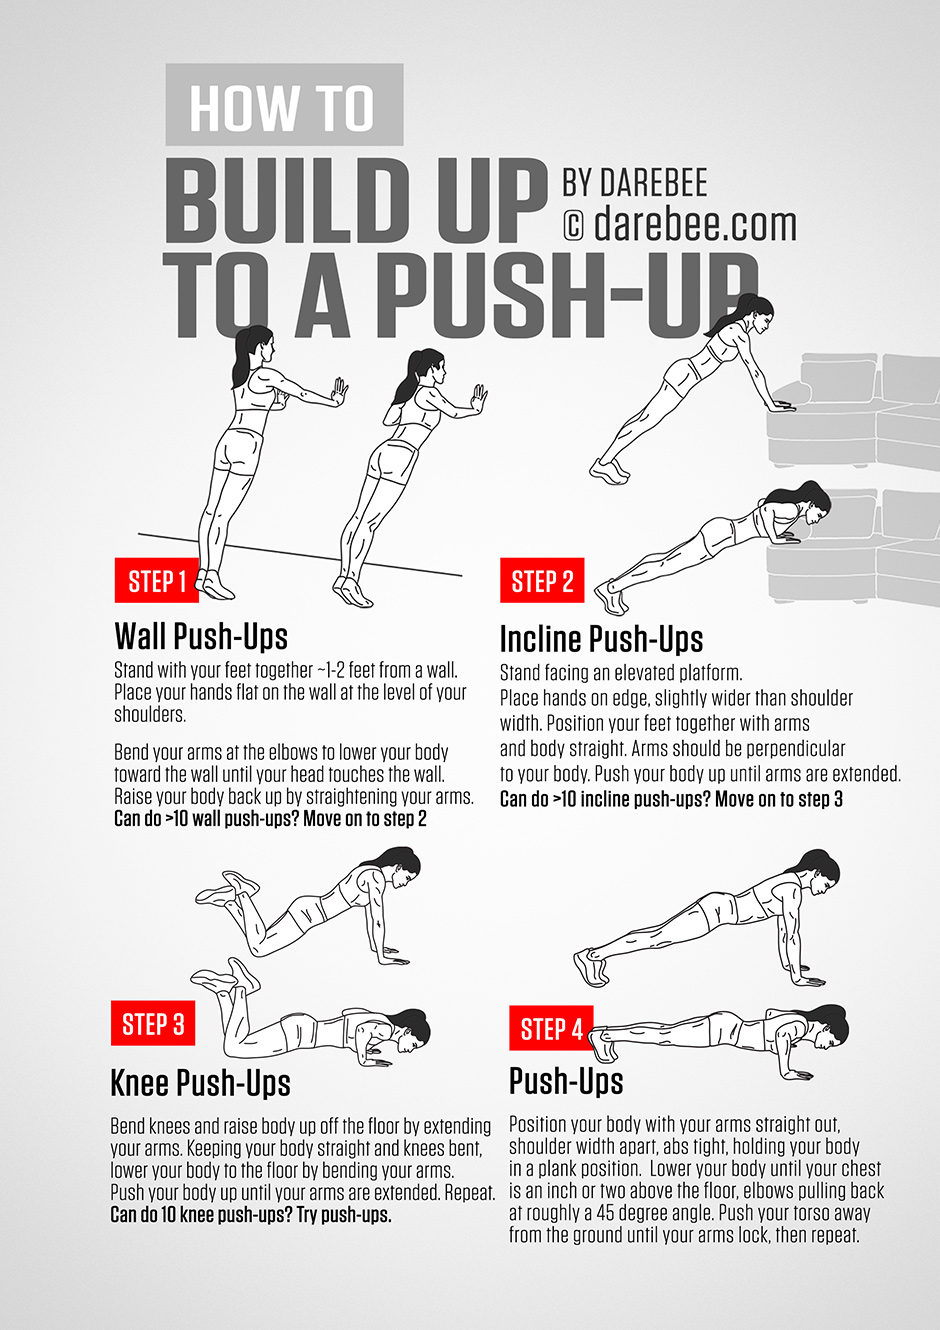 How can I do 1 push up? : AskMen